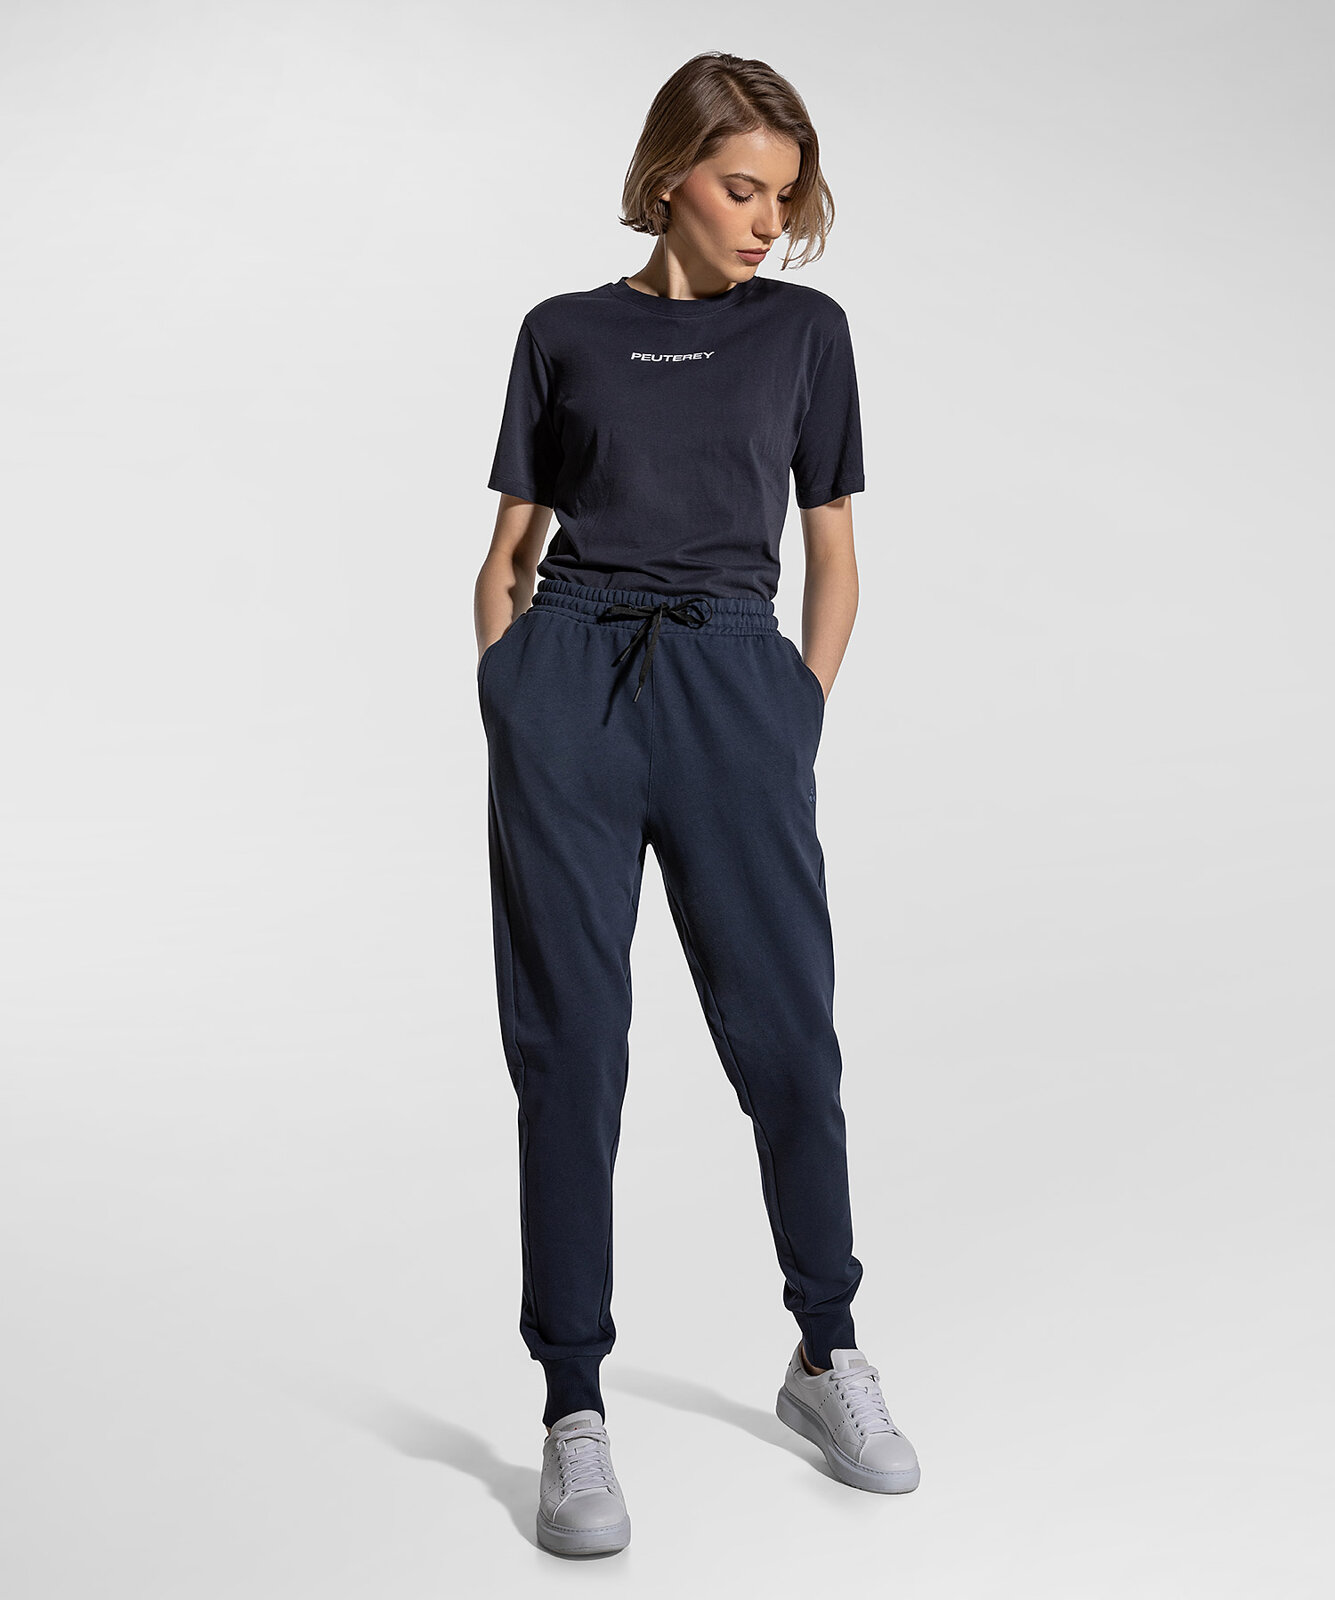 Comfortable Sweatpants - Peuterey